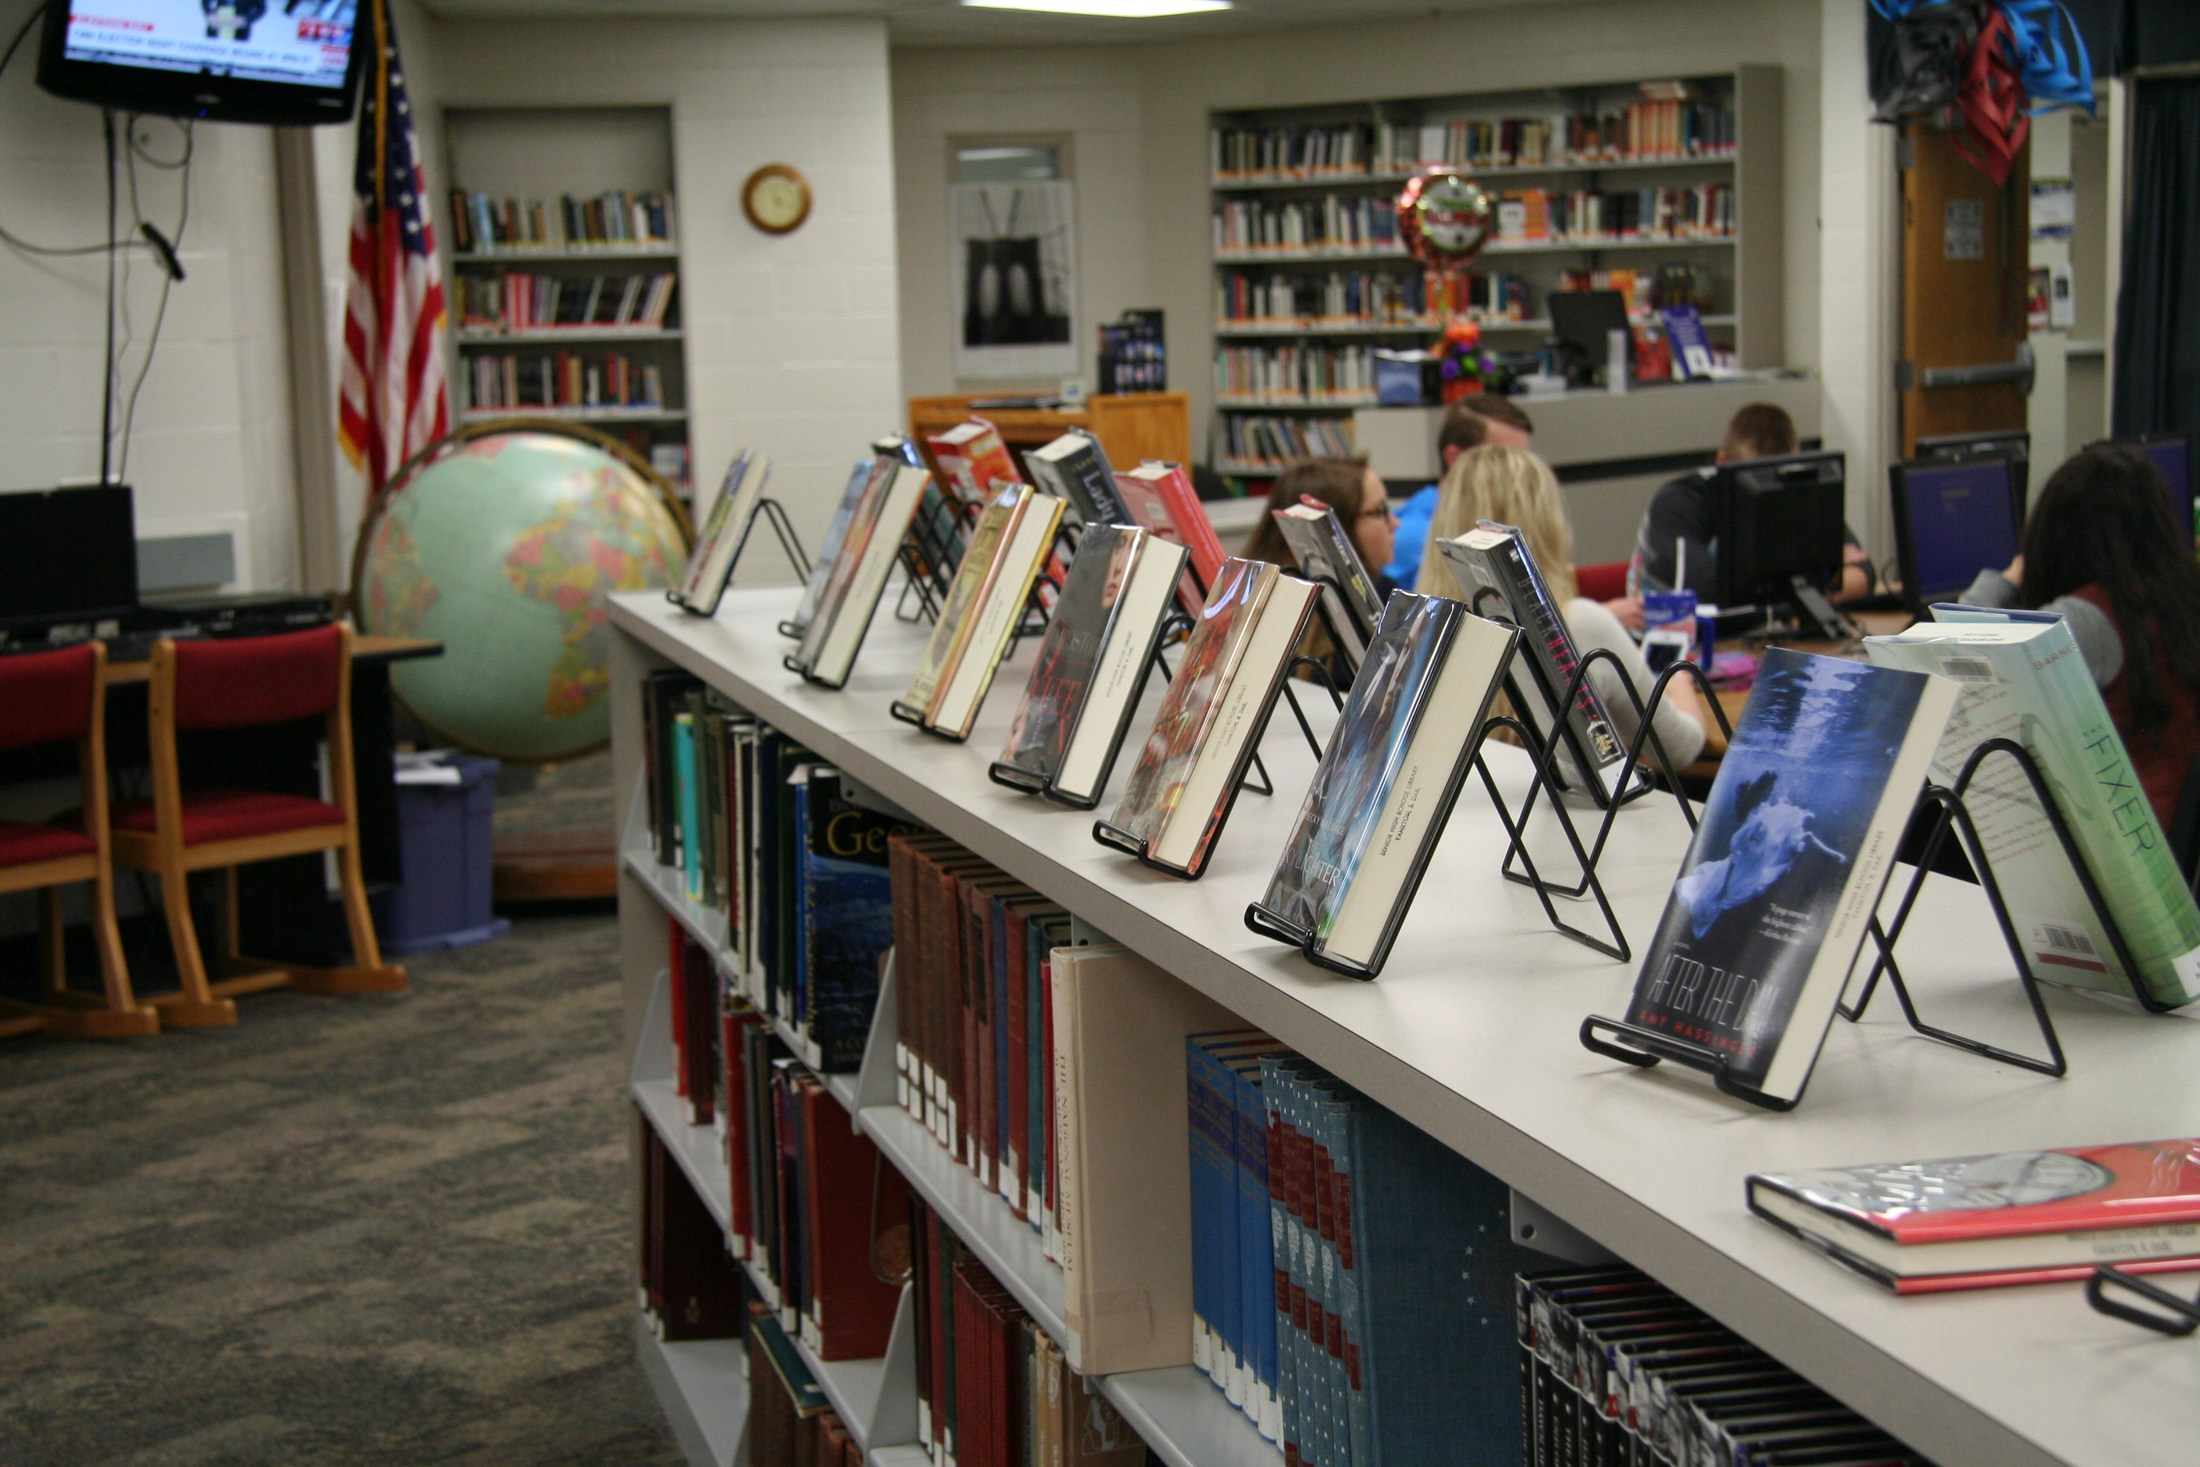 Books on shelf with students in backround